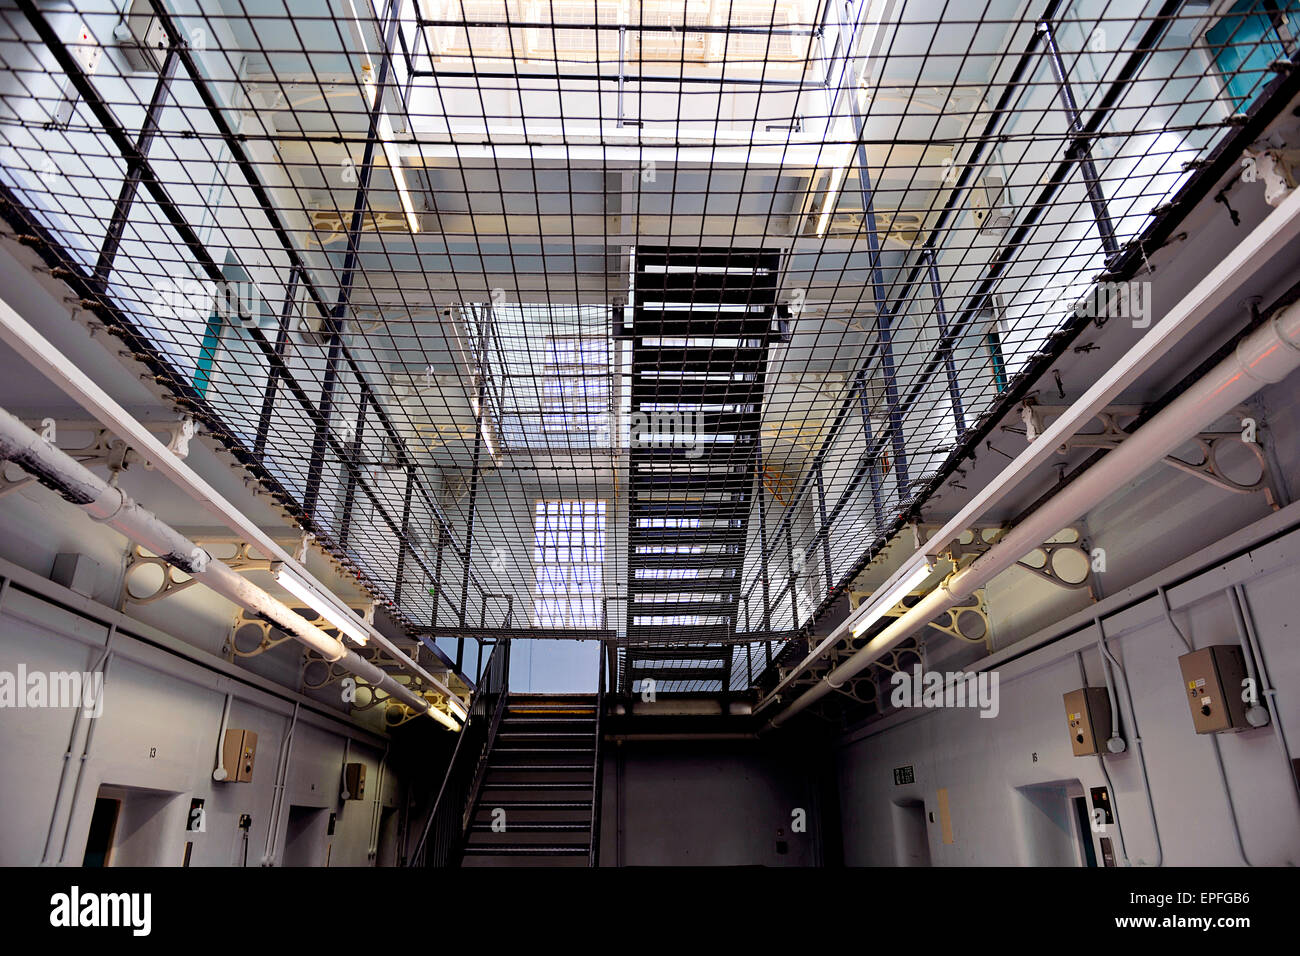 Shepton Mallet Prison, Somerset. When it closed in 2013, it was the United Kingdom's oldest operating prison. - Stock Image